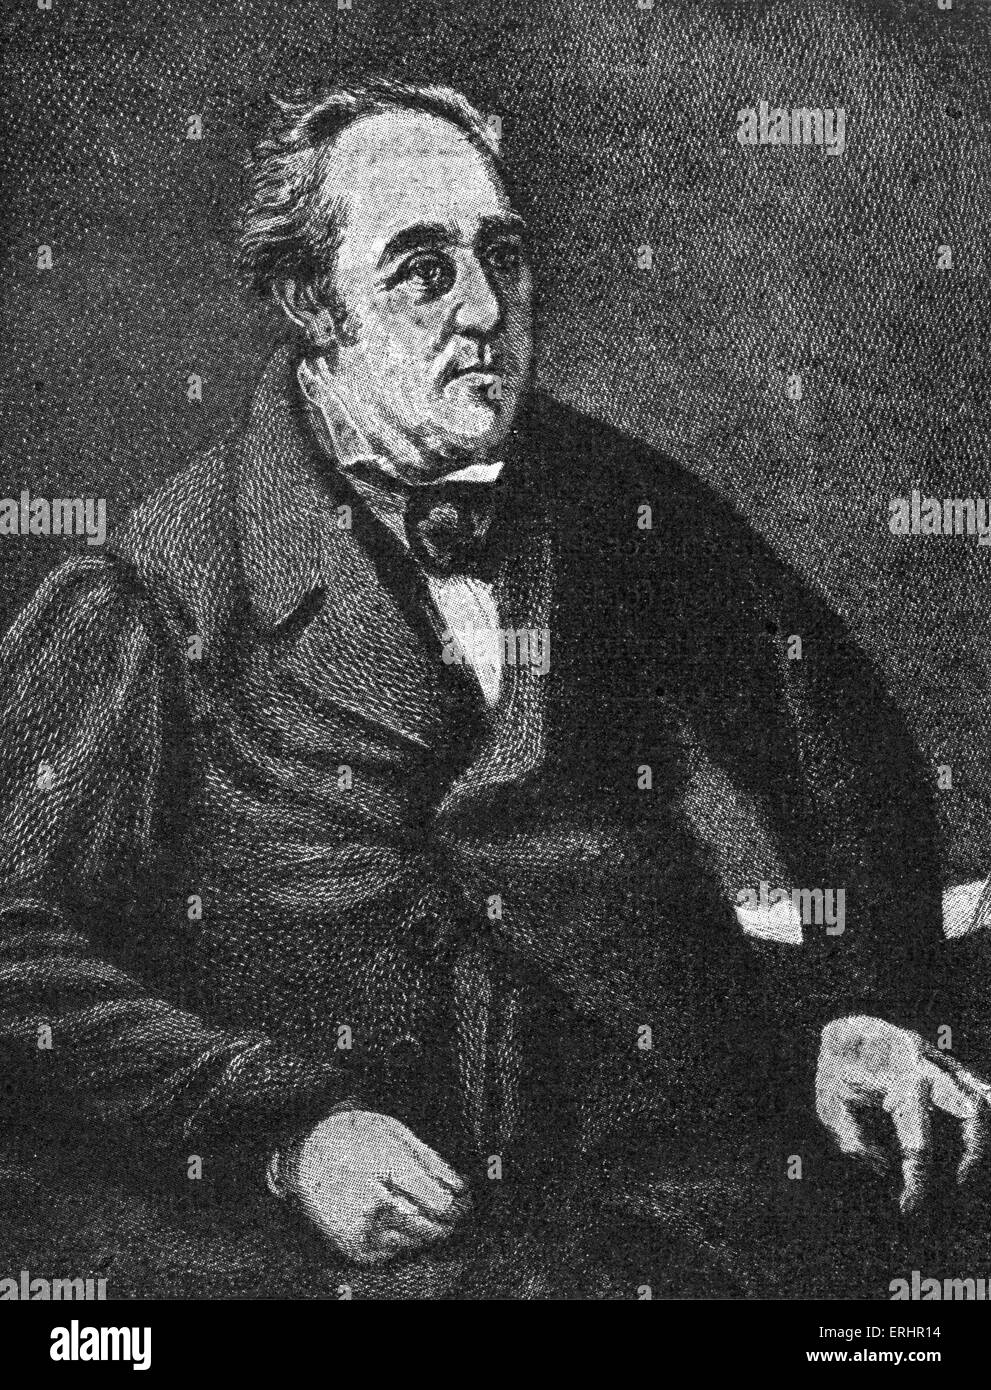 Walter Savage Landor - English writer and poet: 30 January 1775 – 17 September 1864. After a drawing by W. Fisher. - Stock Image